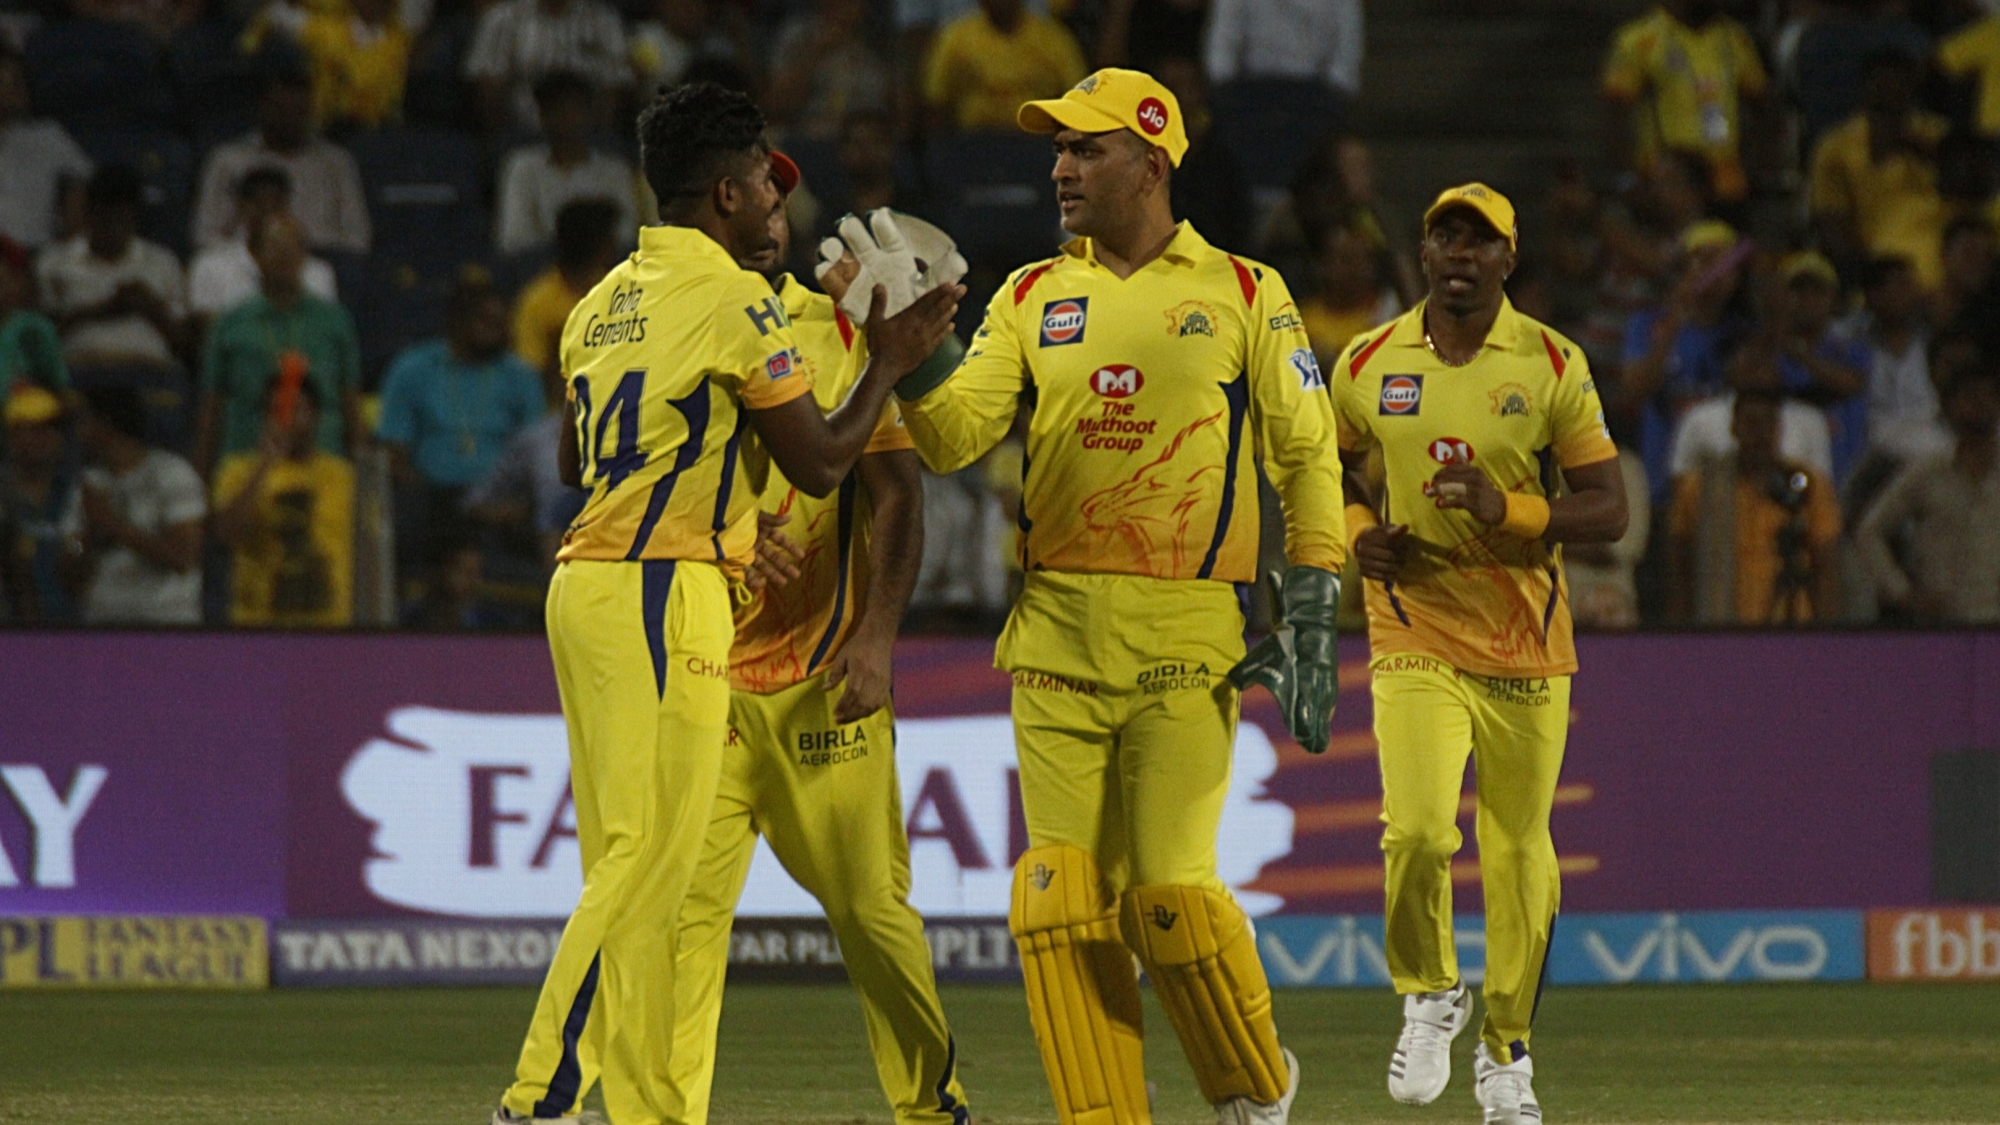 IPL 2018: Twitter reacts to Chennai Super Kings' clinical show against Delhi Daredevils